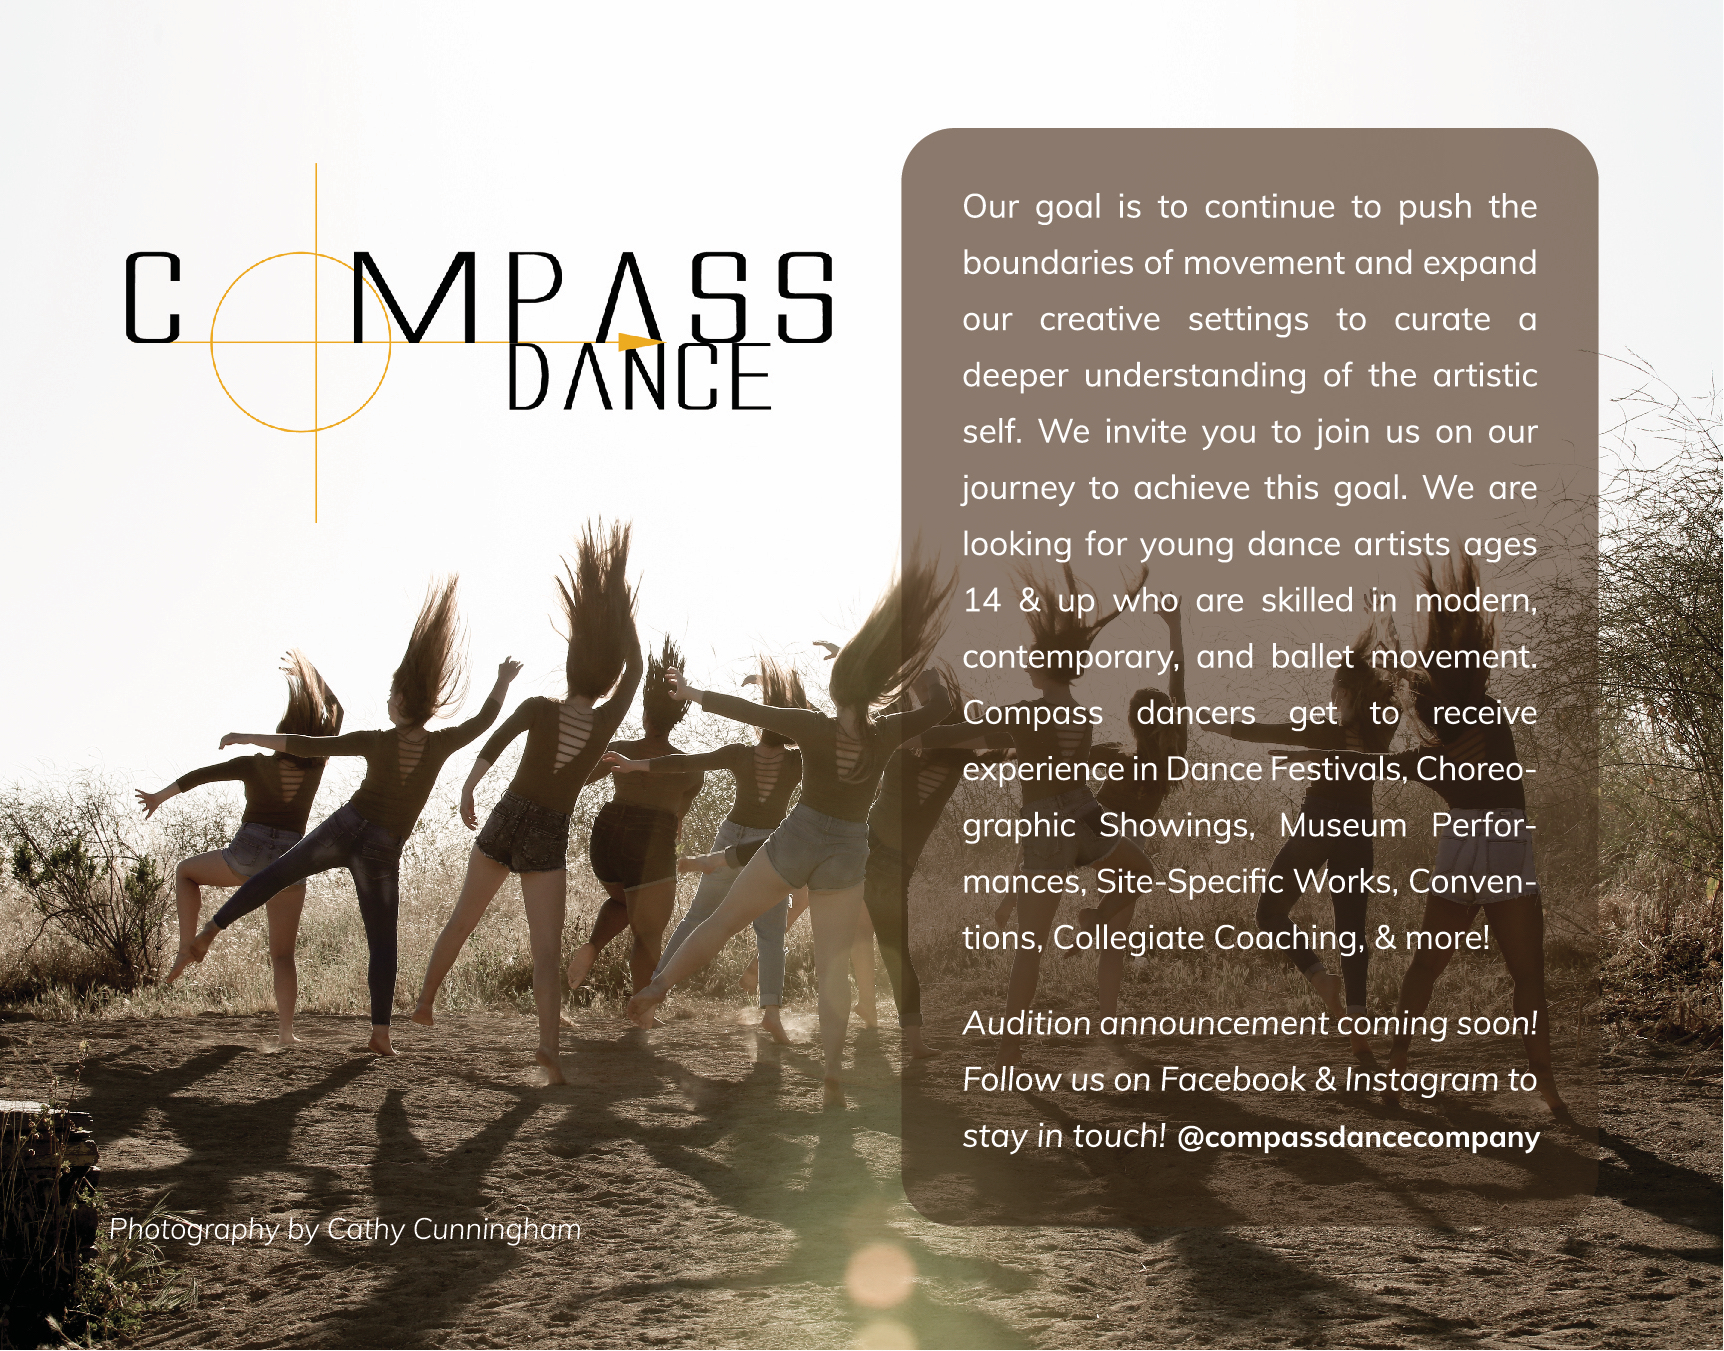 compass dance company   For more information, contact Ms. White at:  compassdance@dancediscoveryfoundation.org   or visit Compass Dance at:     www.compassdancecompany.com